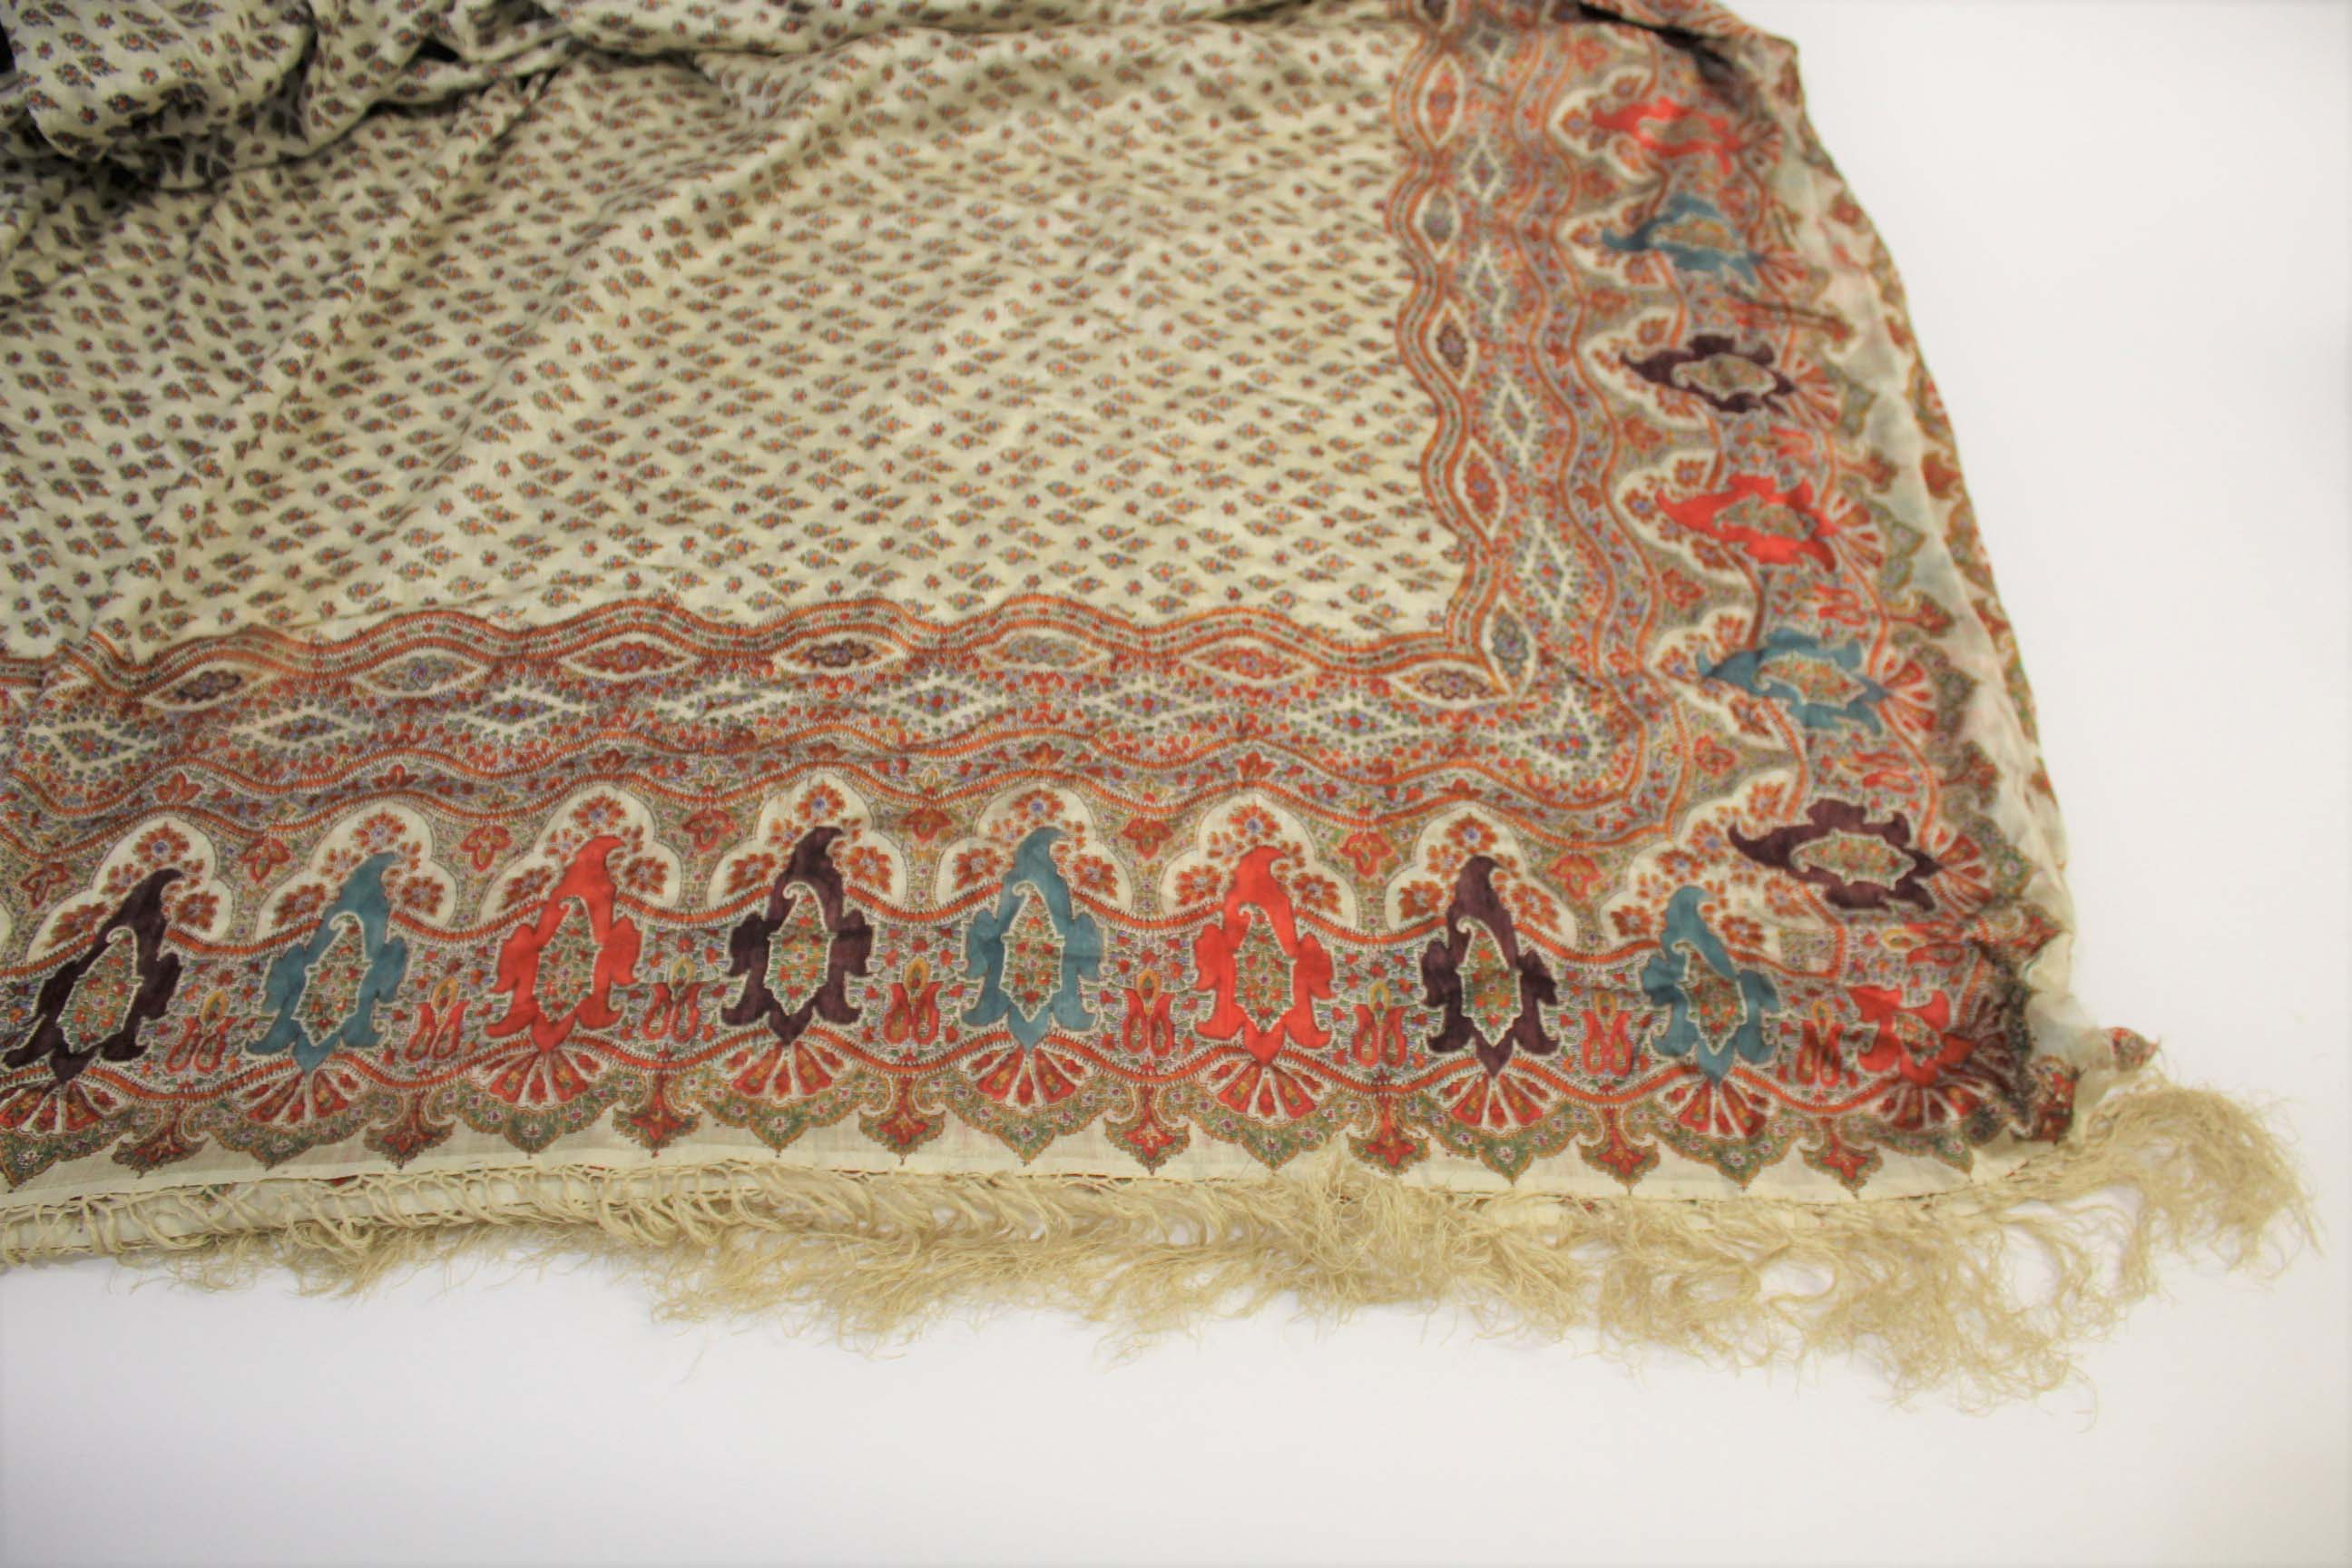 19THC PAISLEY SHAWL a mid 19thc paisley wool cashmere shawl (264cms by 126cms), and also with a fine